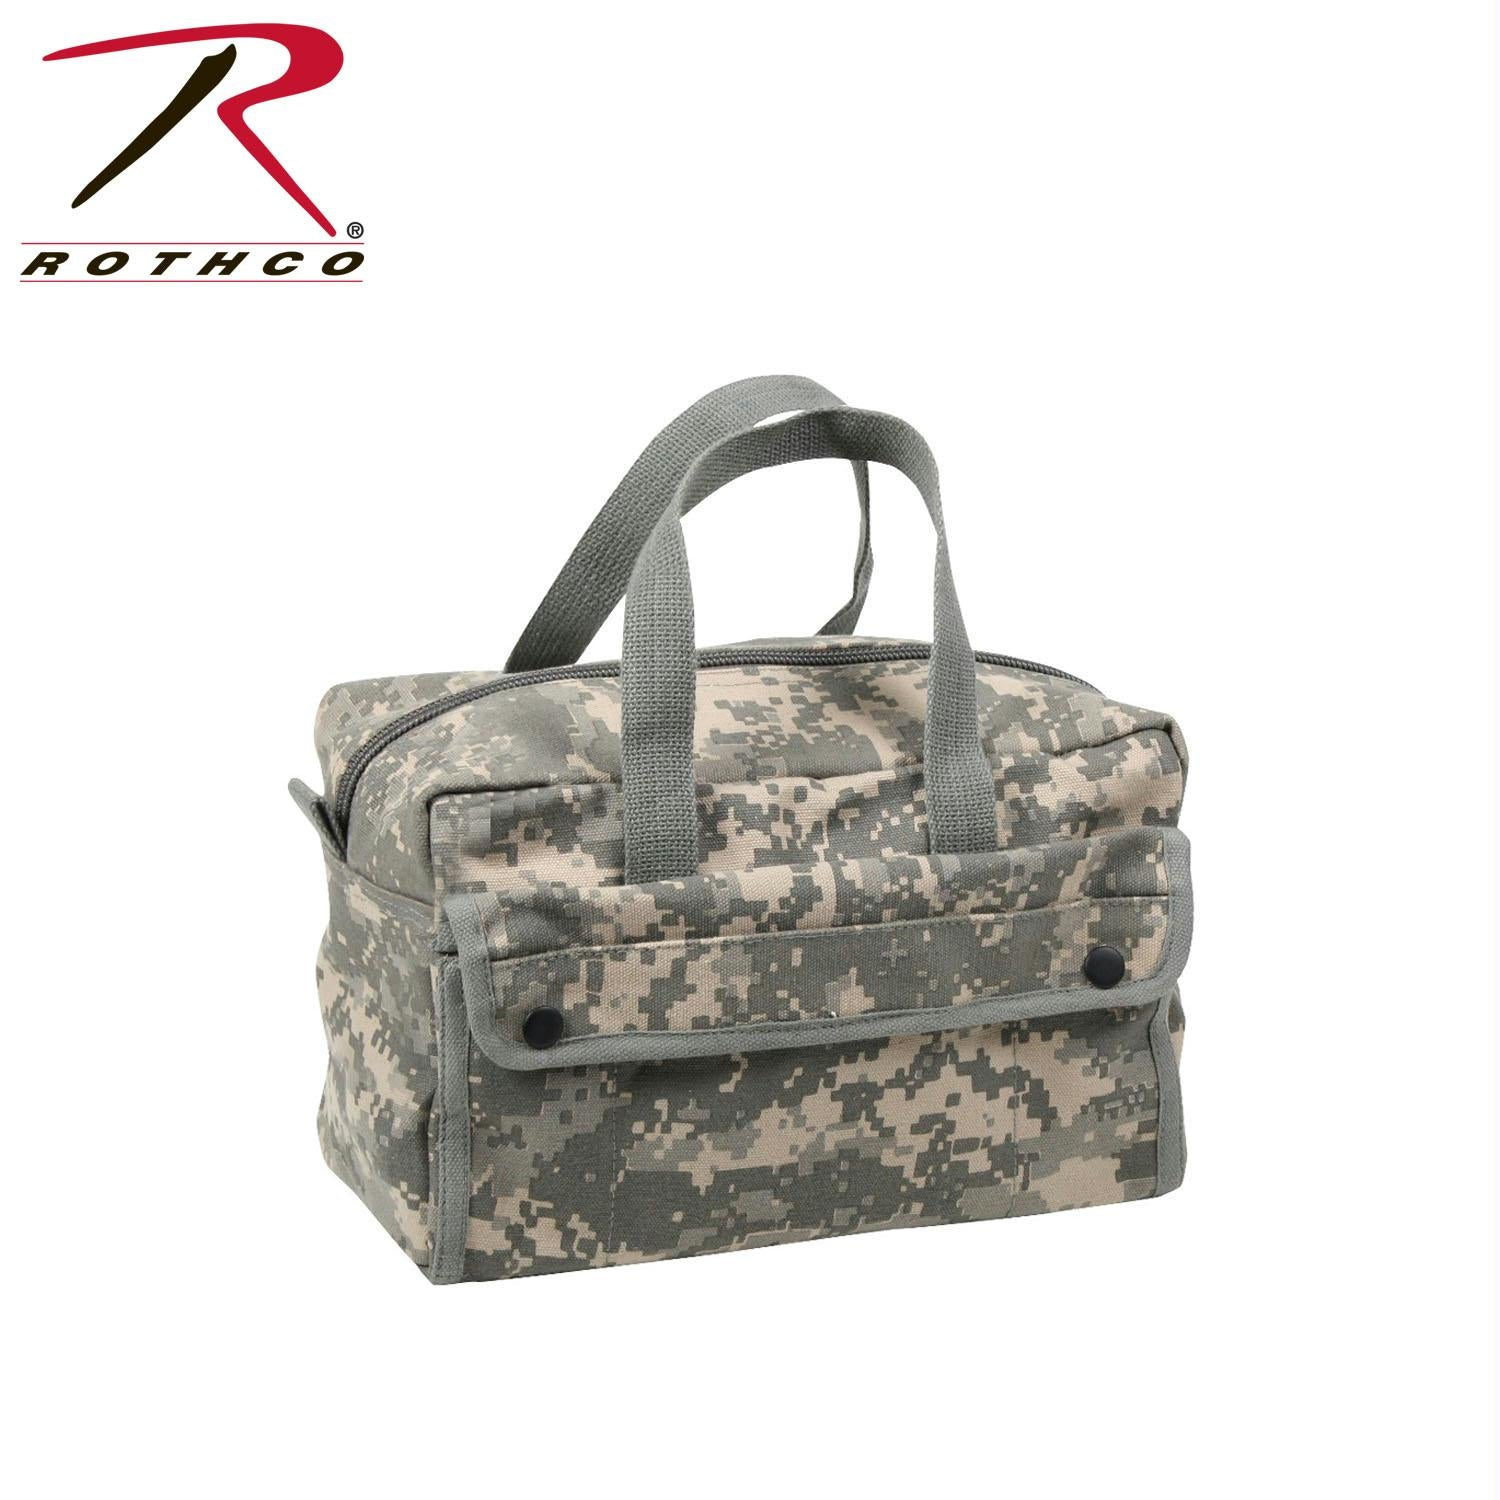 Rothco G.I. Type Mechanics Tool Bags - ACU Digital Camo